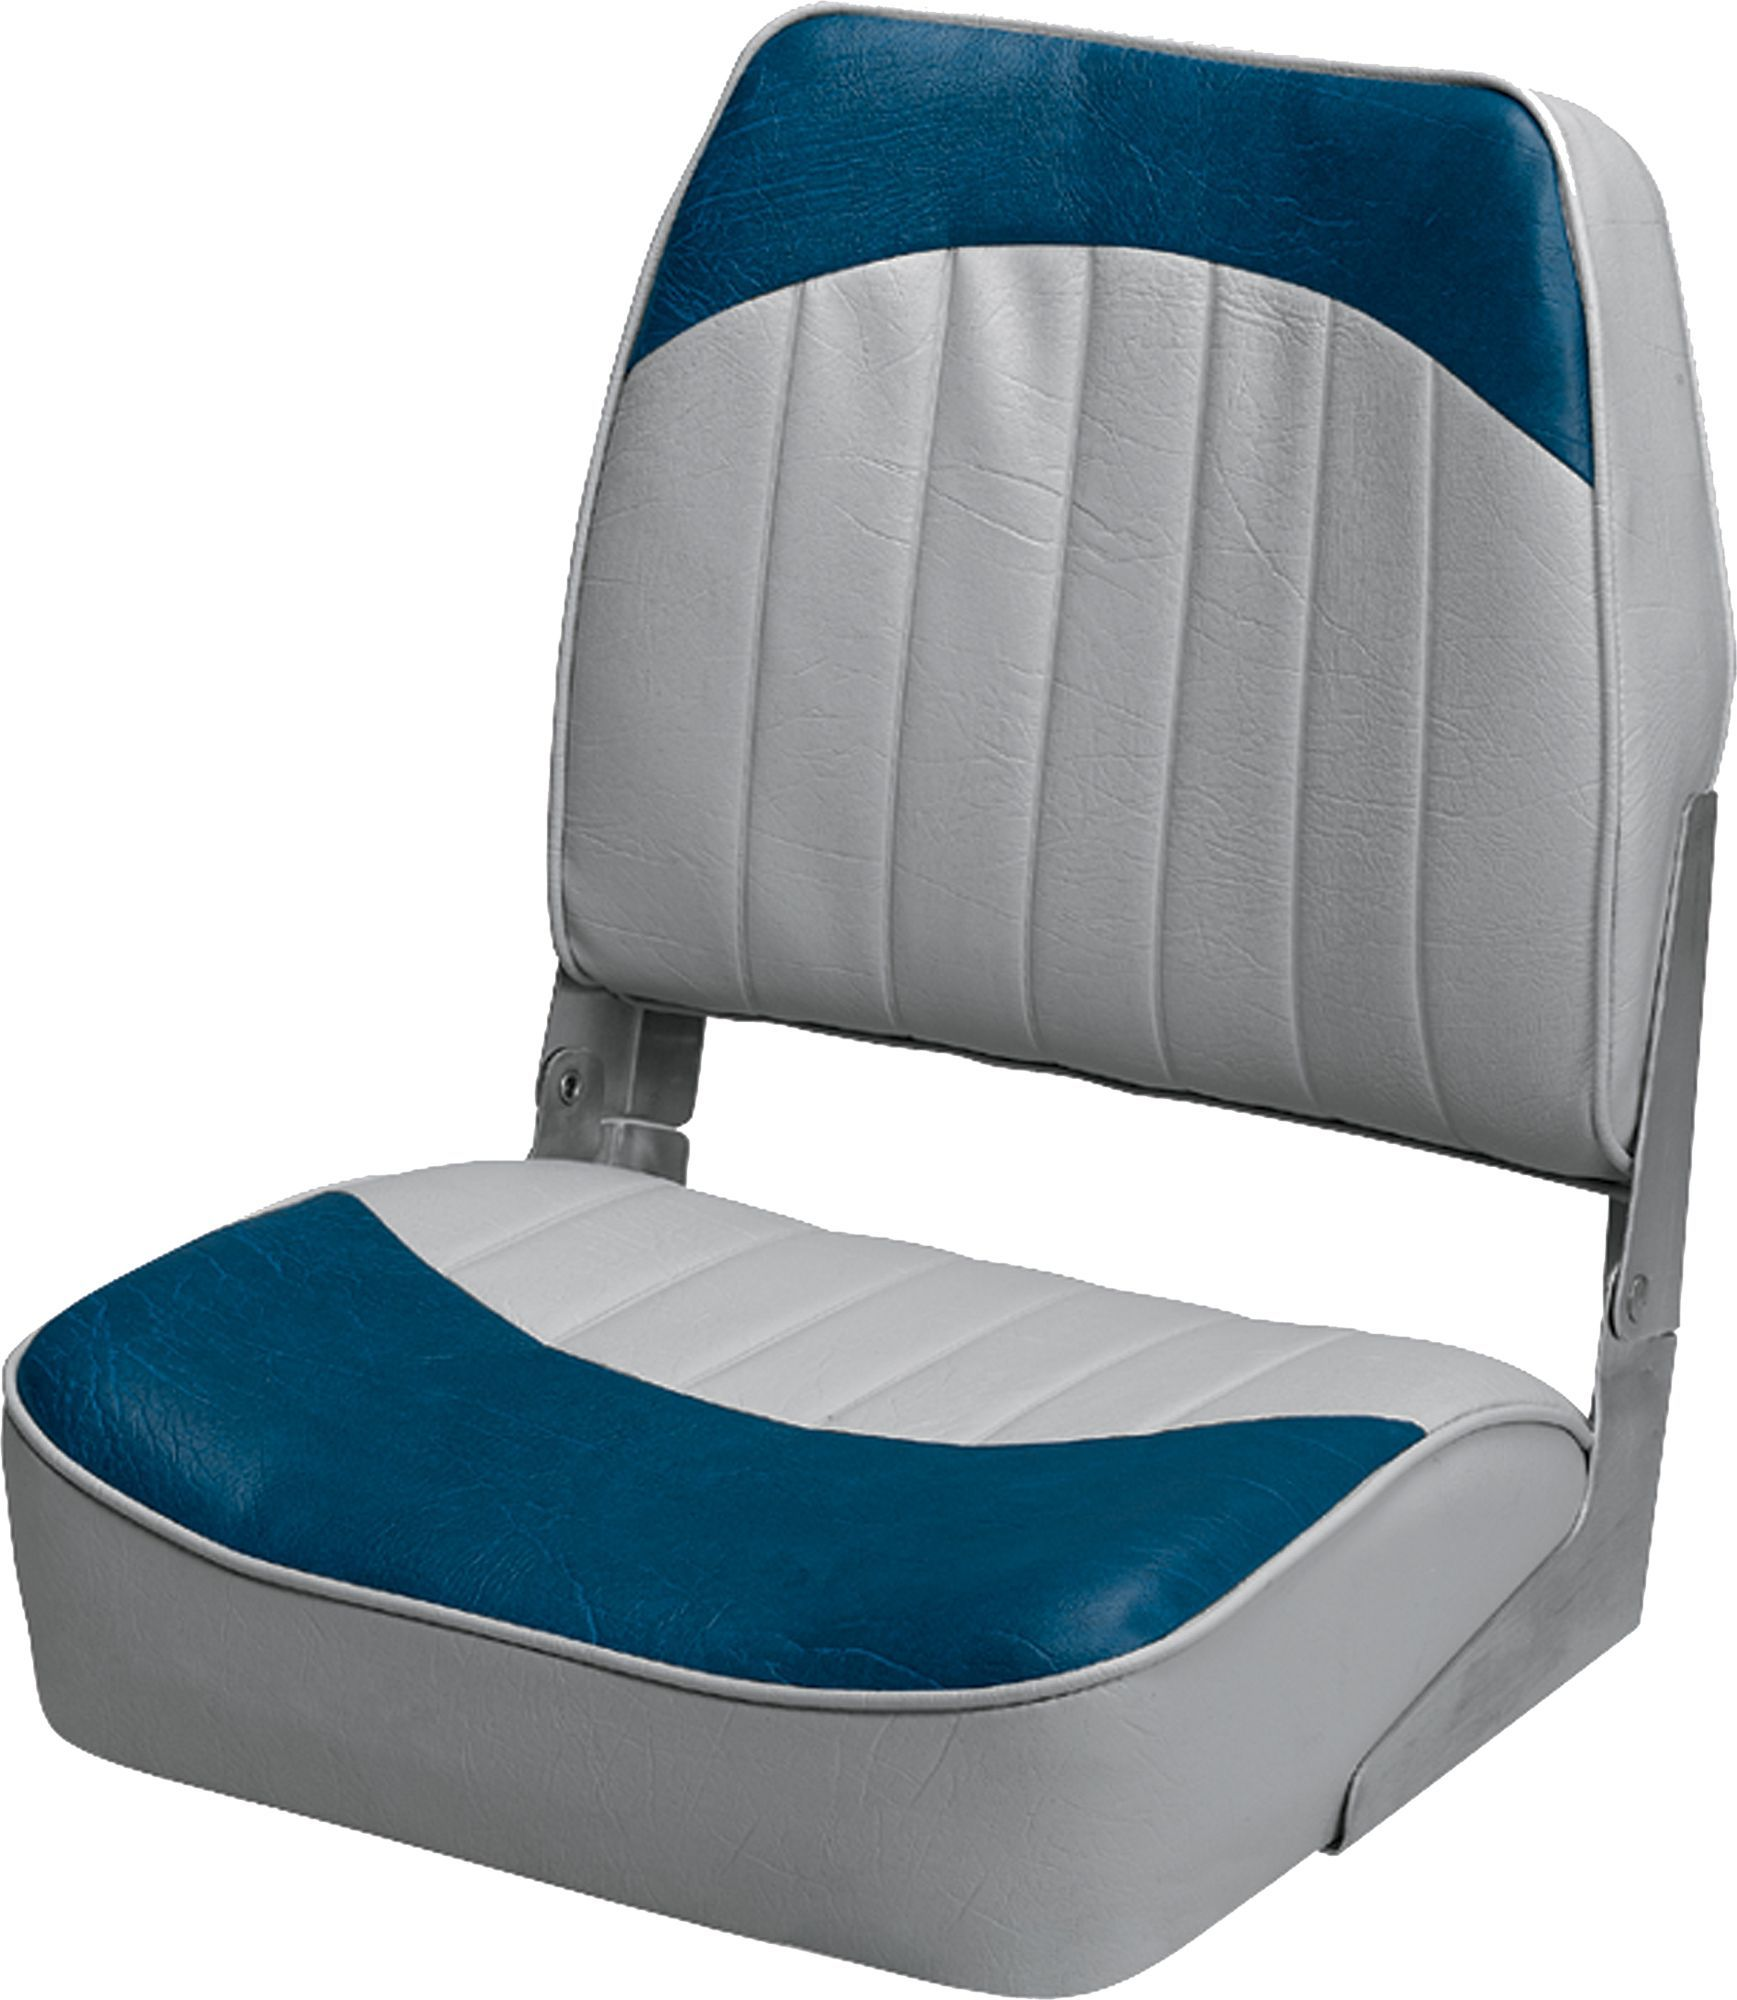 Wise Economy Fishing Boat Seat Fishing Boat Seats Boat Seats Boat Accessories